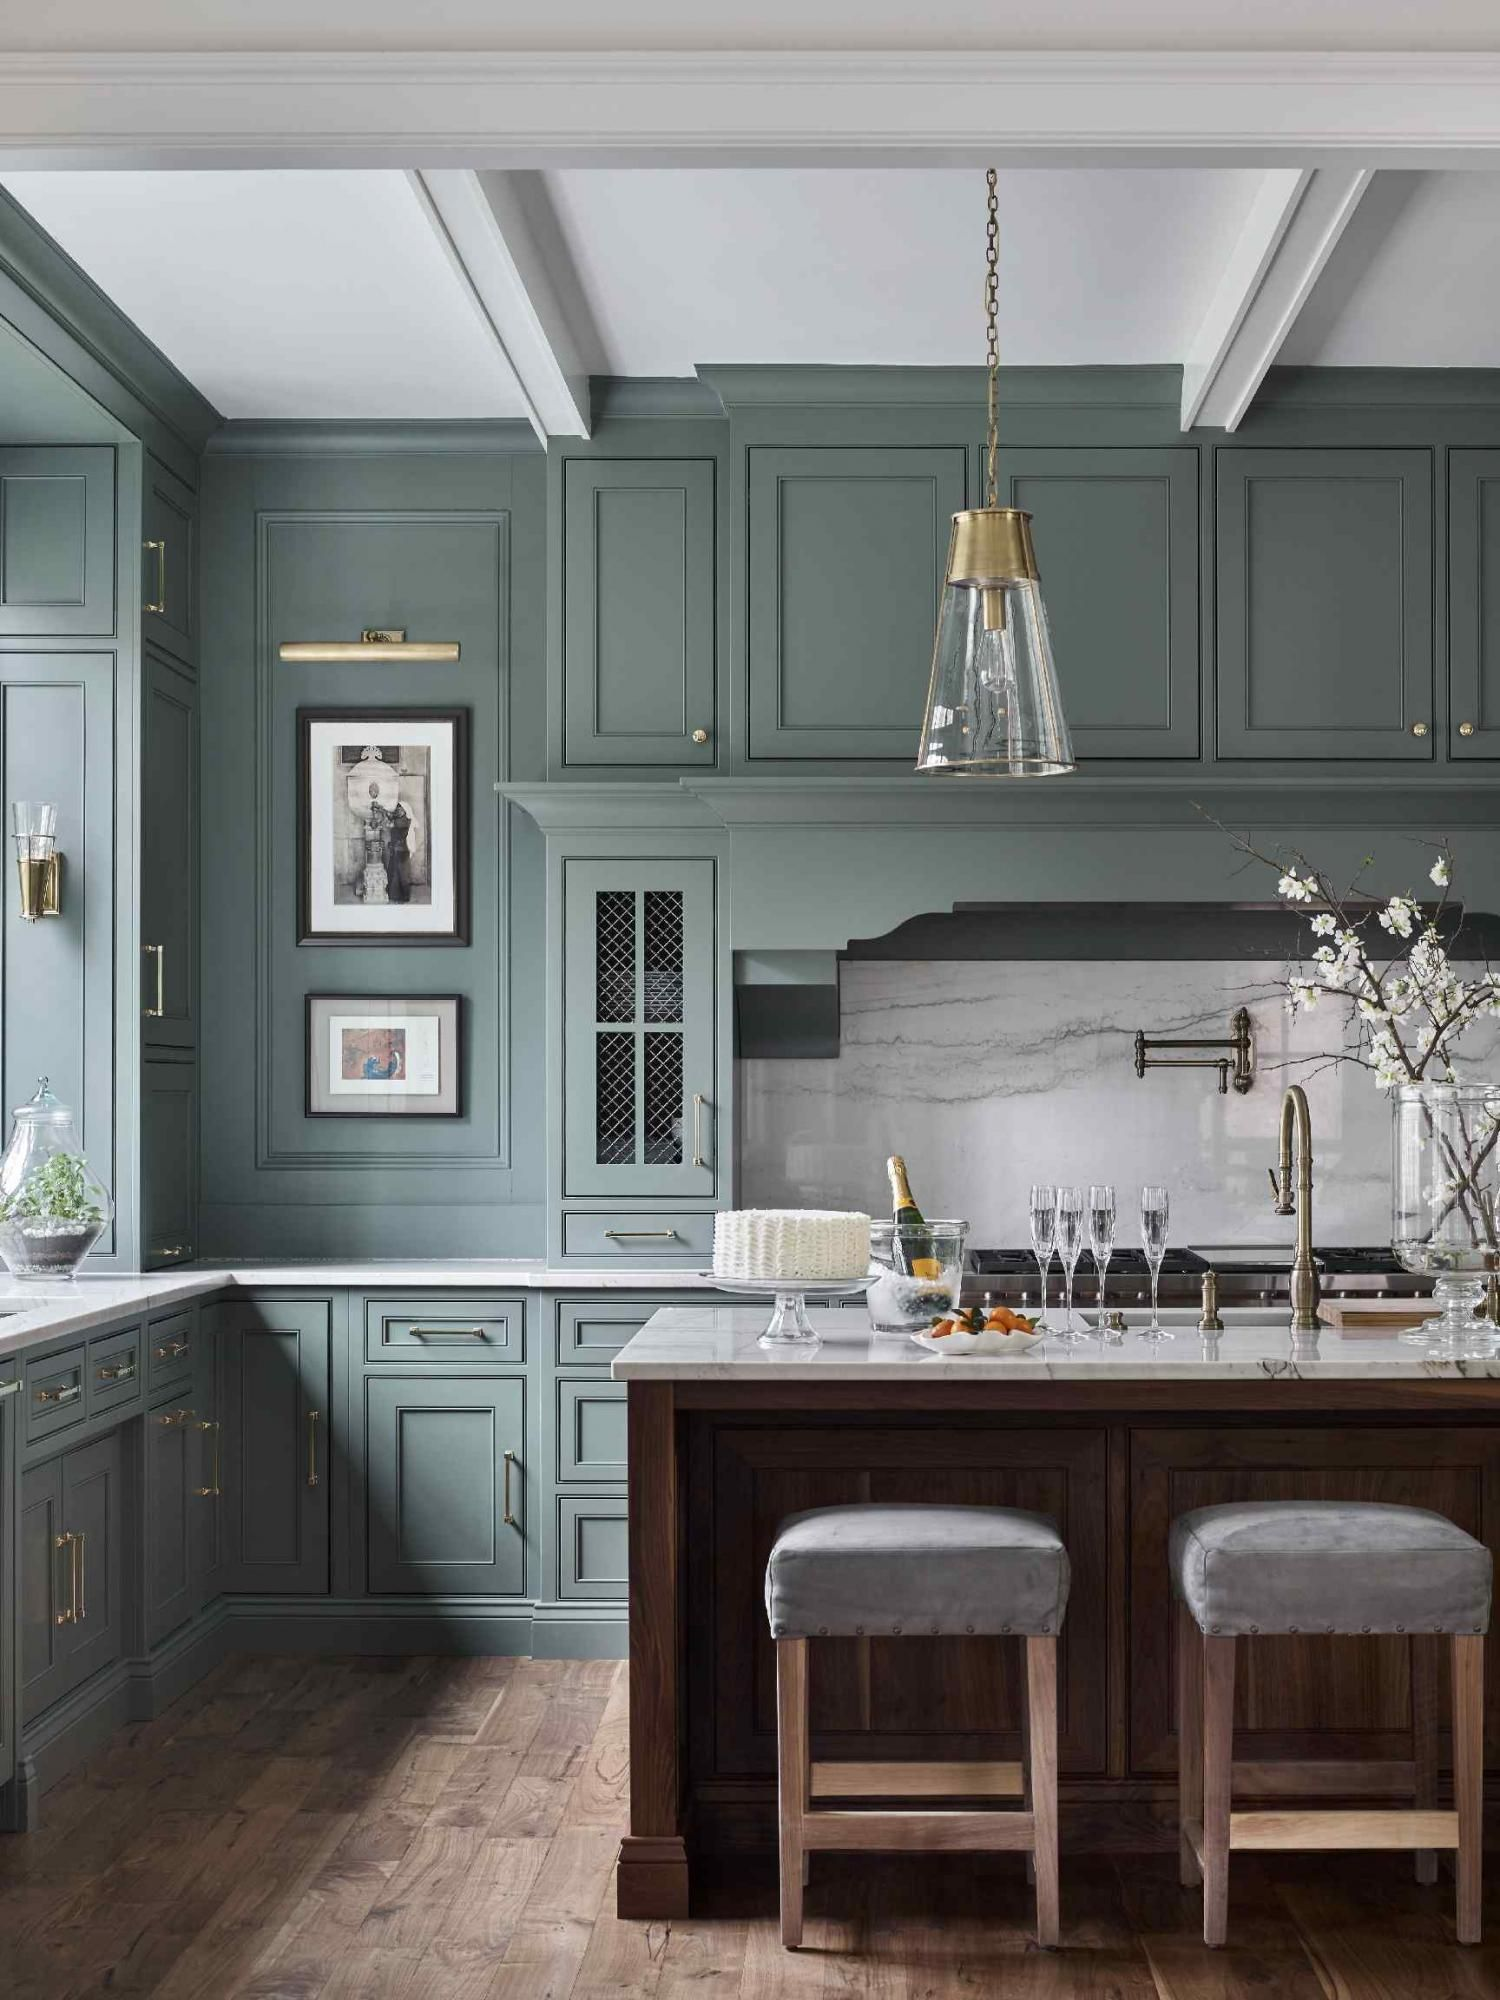 Green Day In 2020 Green Kitchen Designs Kitchen Trends